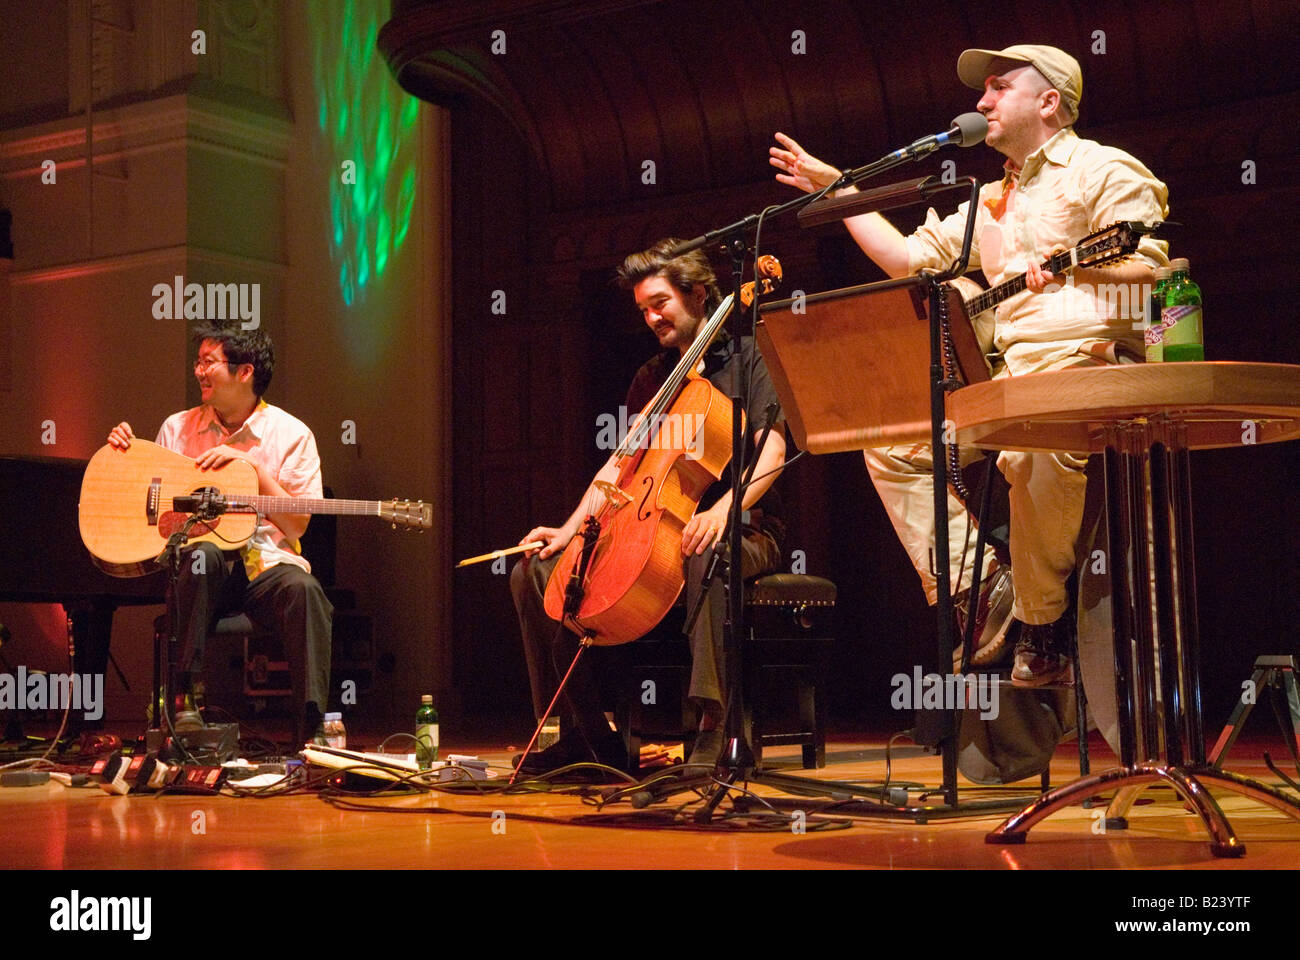 The Magnetic Fields, with Stephin Merritt on the right,  performing at The Cadogan Hall, London, 10th July 2008 - Stock Image